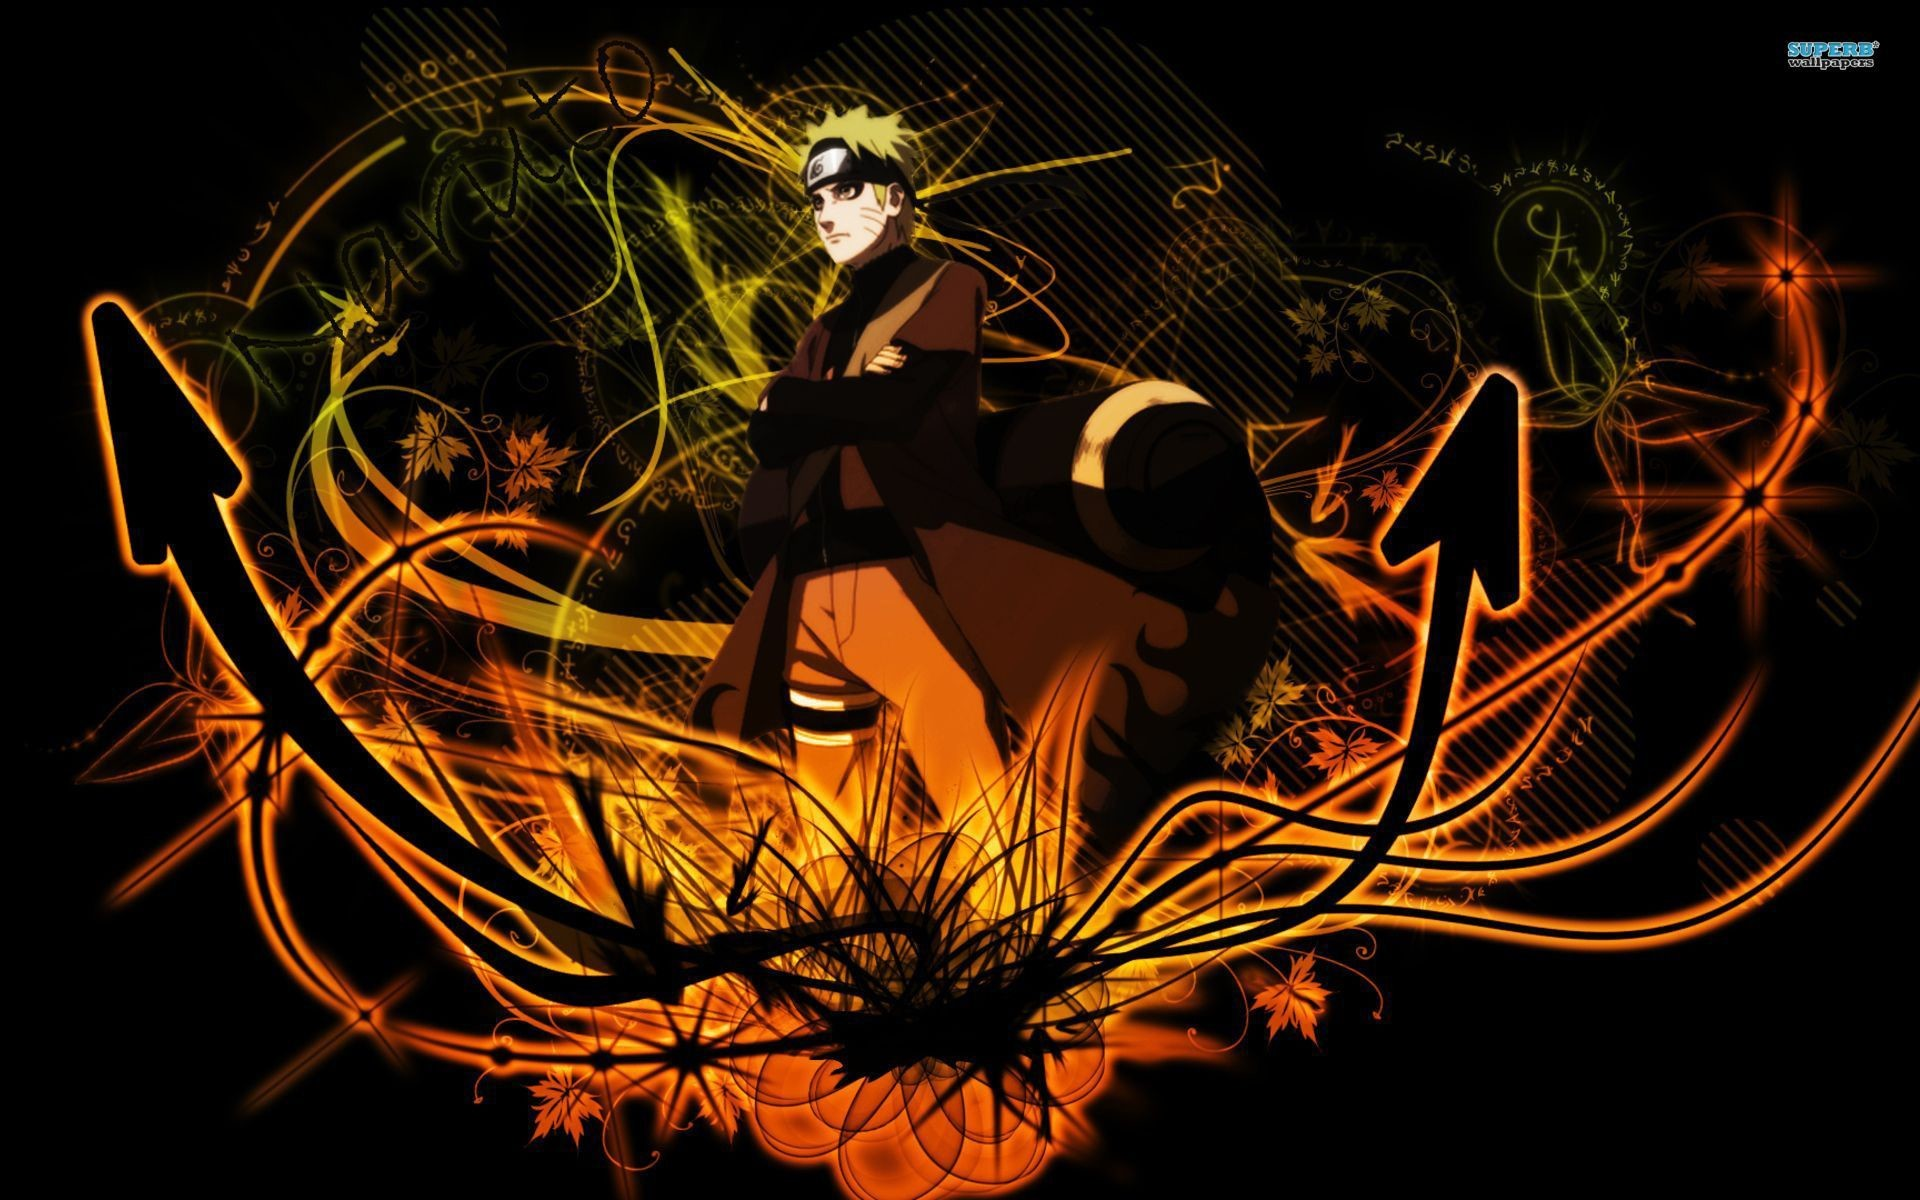 1920x1200 Naruto HD Wallpapers and Backgrounds 1920×1080 Imagenes De Naruto Shippuden Wallpapers (49